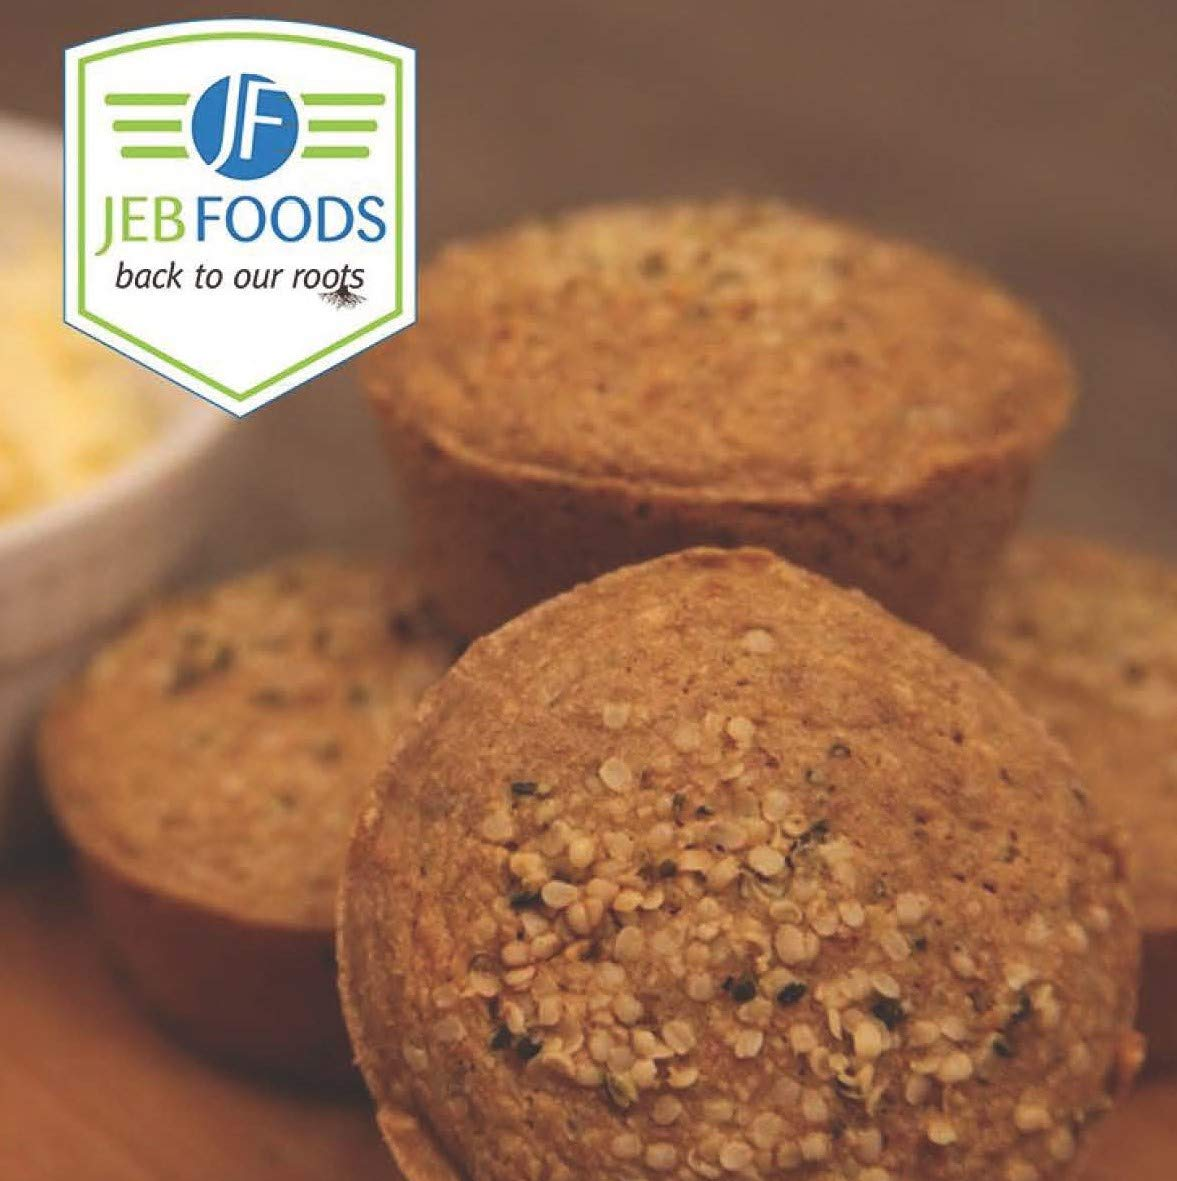 JEB FOODS Oven-Dried Cassava flour 4lbs bag-No Grittiness, No Smell (Manioc or Yuca Flour) nut- free, grain-free, gluten-free baking, non-gmo, 100% Naturally Grown (4LB) by JEB FOODS (Image #6)